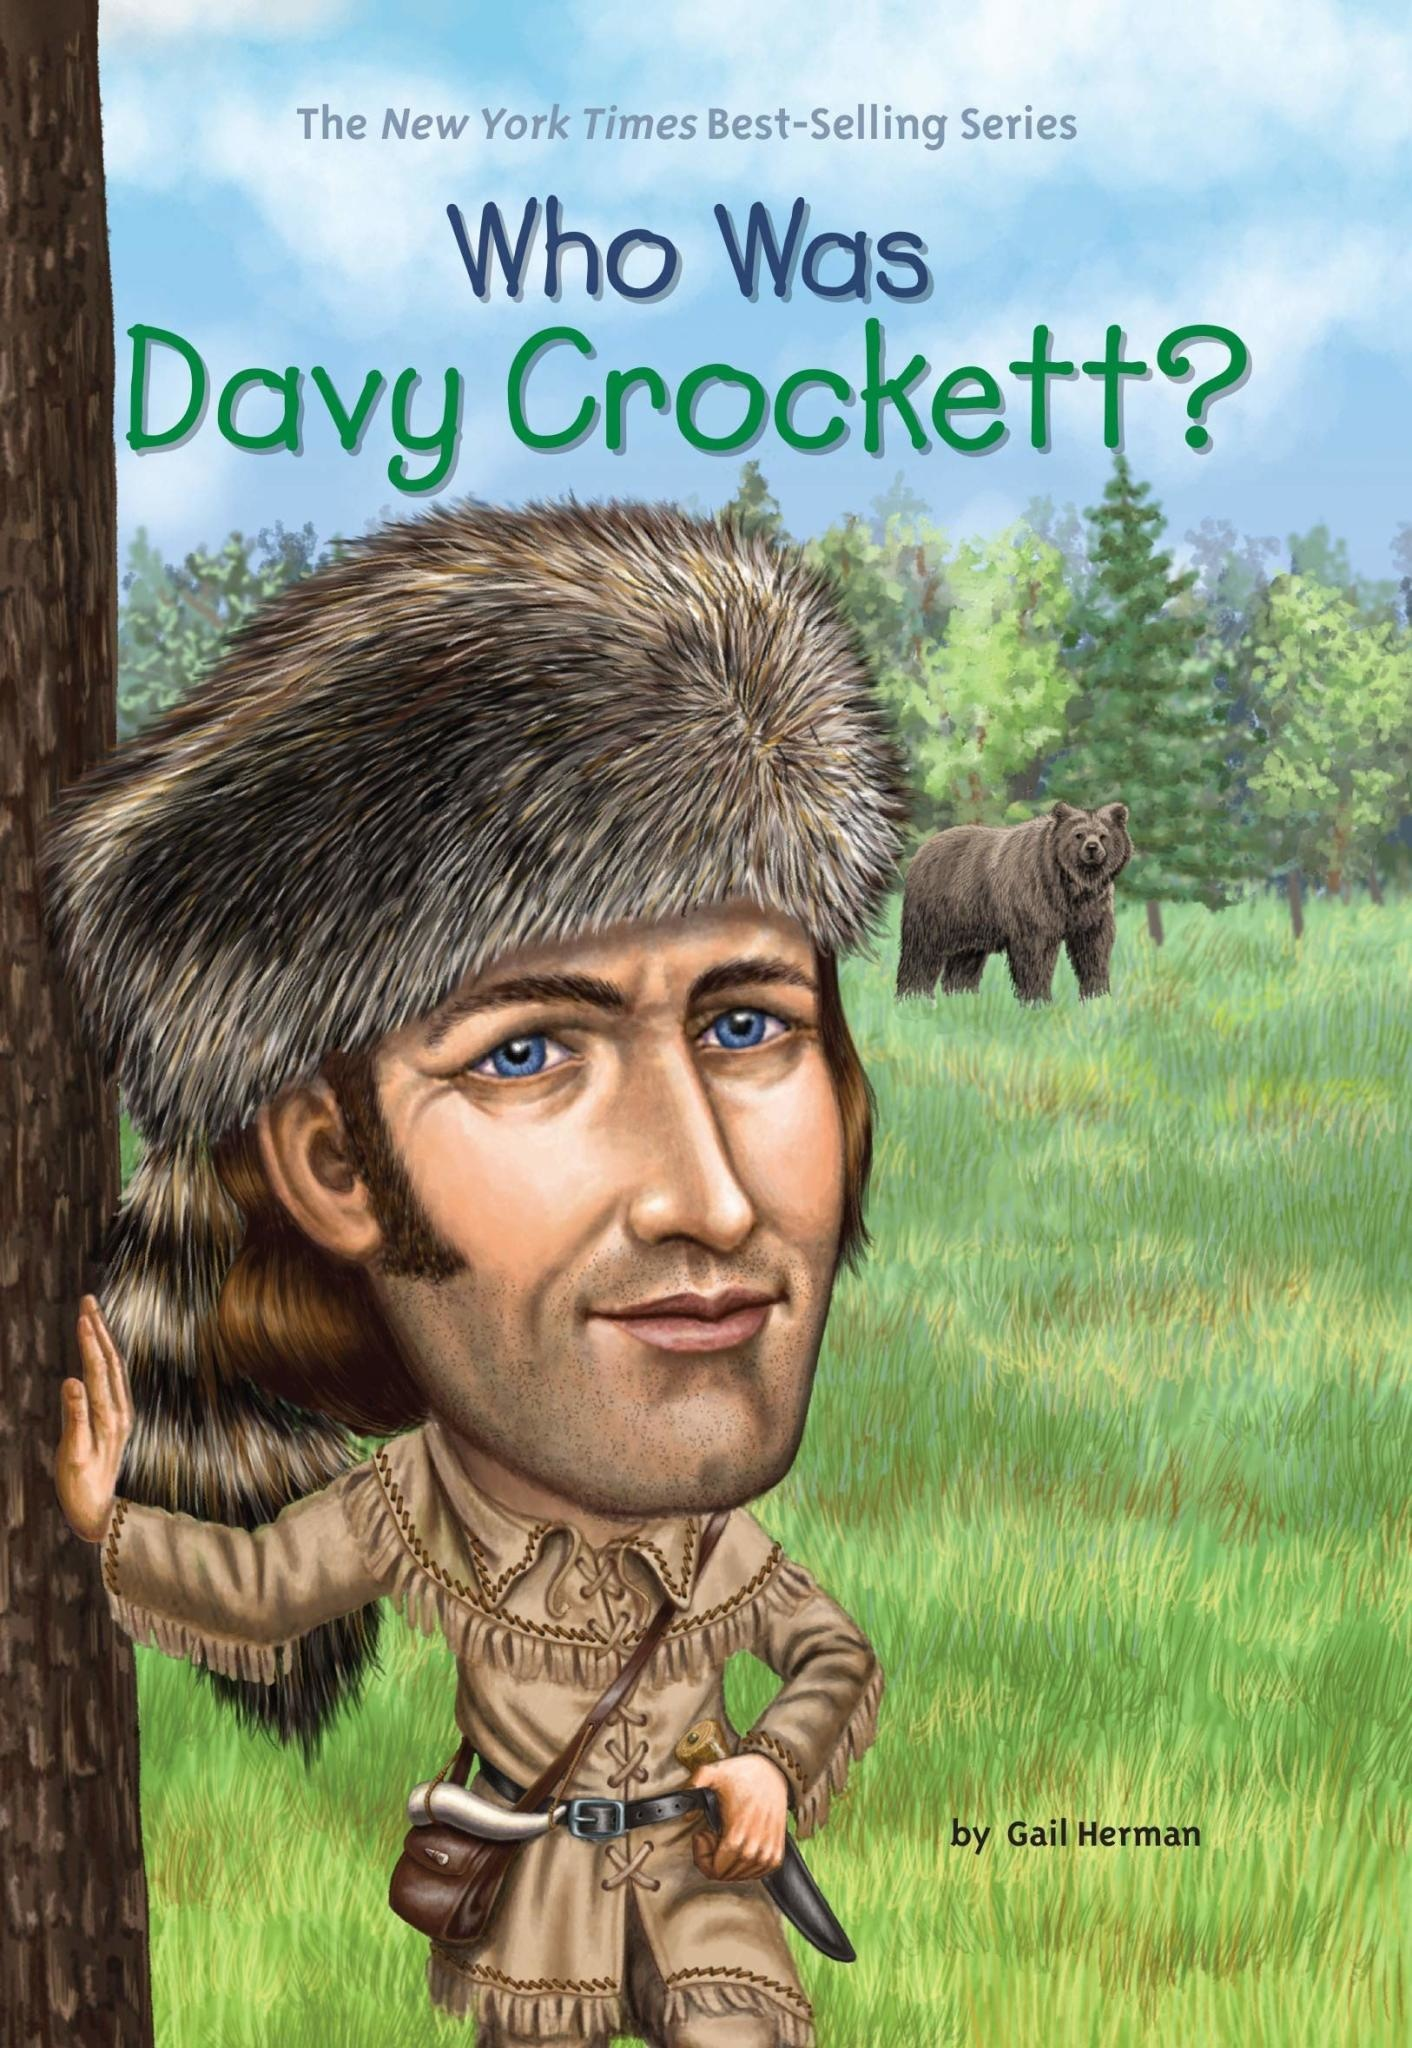 Who What Where Who Was Davy Crockett? Paperback Book